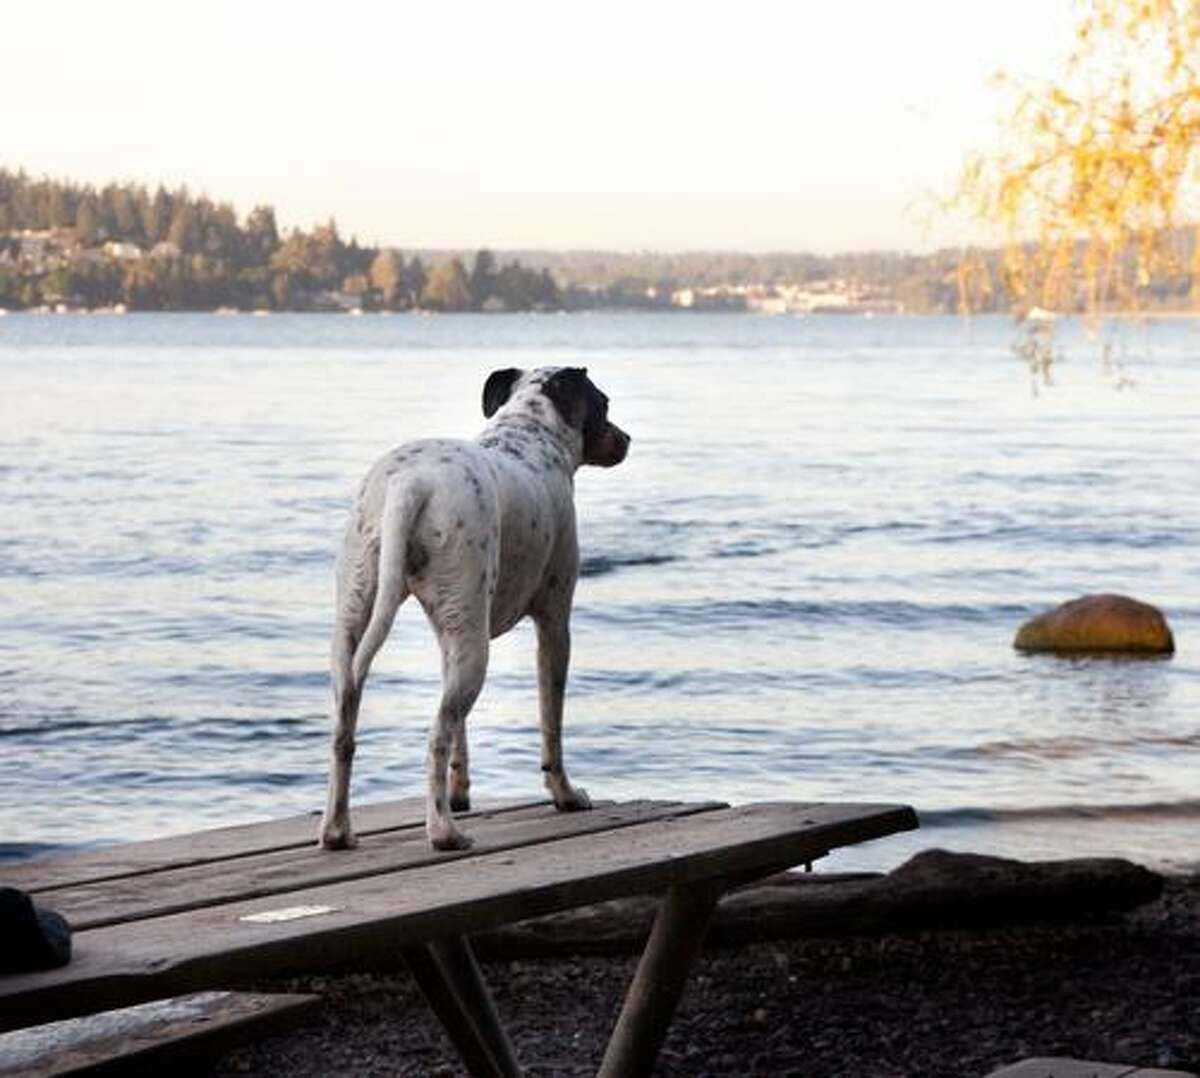 Maggie, a Jack Russell/Dalmatian mix, takes in the view at Magnuson Park's off-leash area.